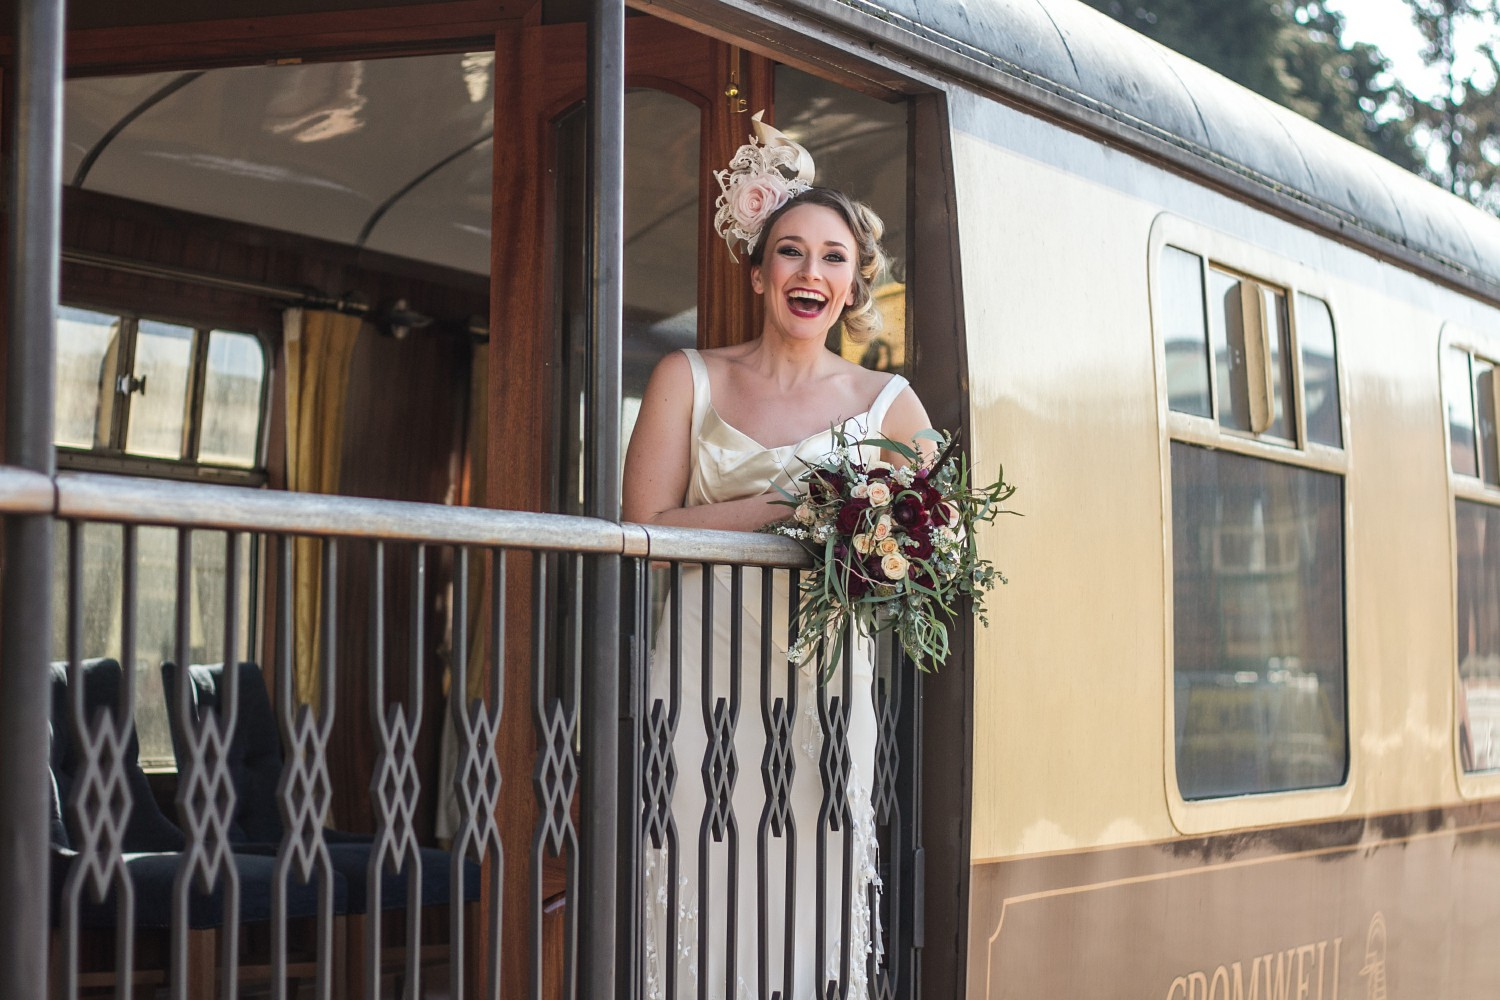 Iso Elegant Photography - Leicester wedding network - Railway wedding - vintage wedding 9